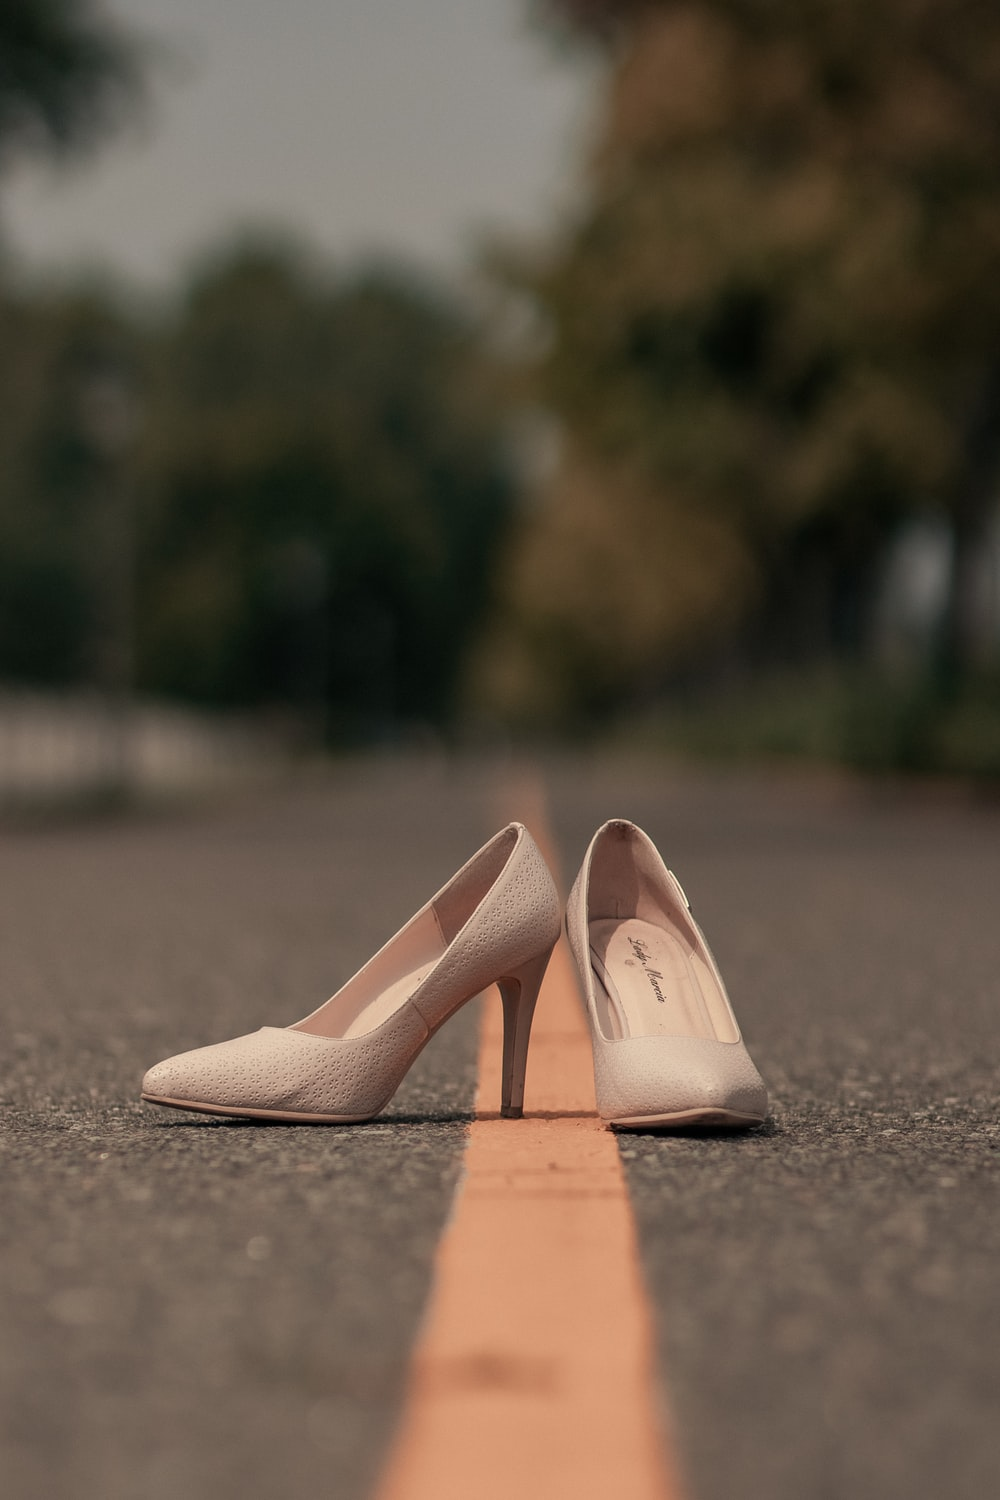 pair of white pumps on road